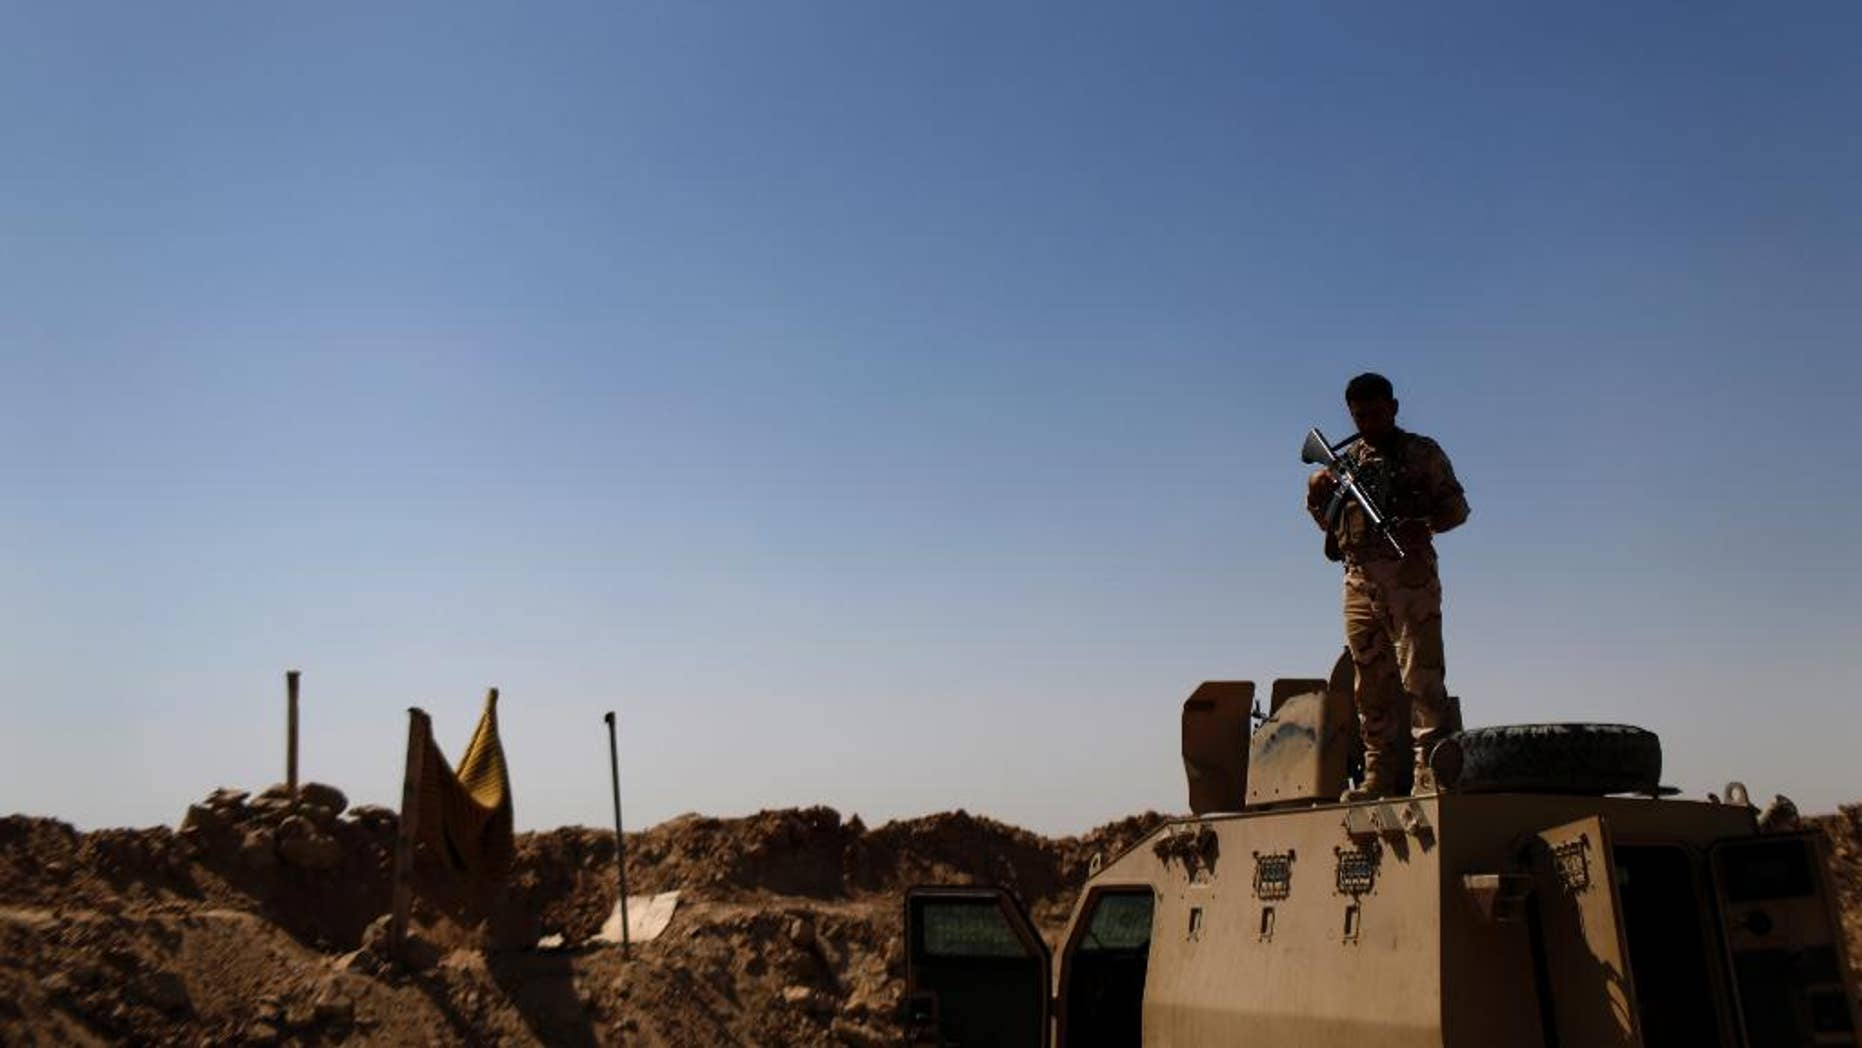 A Kurdish Peshmerga fighter stands guard atop an armored vehicle at a combat outpost on the outskirts of Makhmour, 300 kilometers (186 miles) north of Baghdad, Iraq, Saturday, Sept. 6, 2014. The U.S. and nine key allies agreed Friday, that the Islamic State group is a significant threat to NATO countries and that they will take on the militants by squeezing their financial resources and going after them with military might. (AP Photo/ Marko Drobnjakovic)